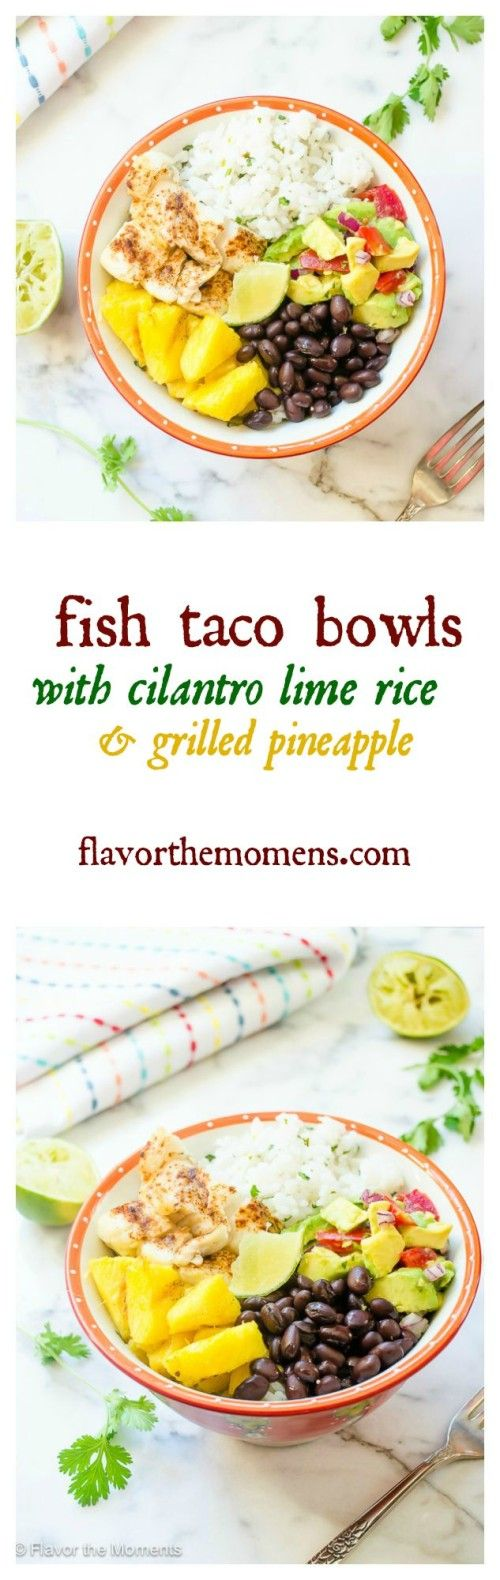 fish-taco-bowls-with-cilantro-lime-rice-and-grilled-pineapple-collage-flavorthemoments.com